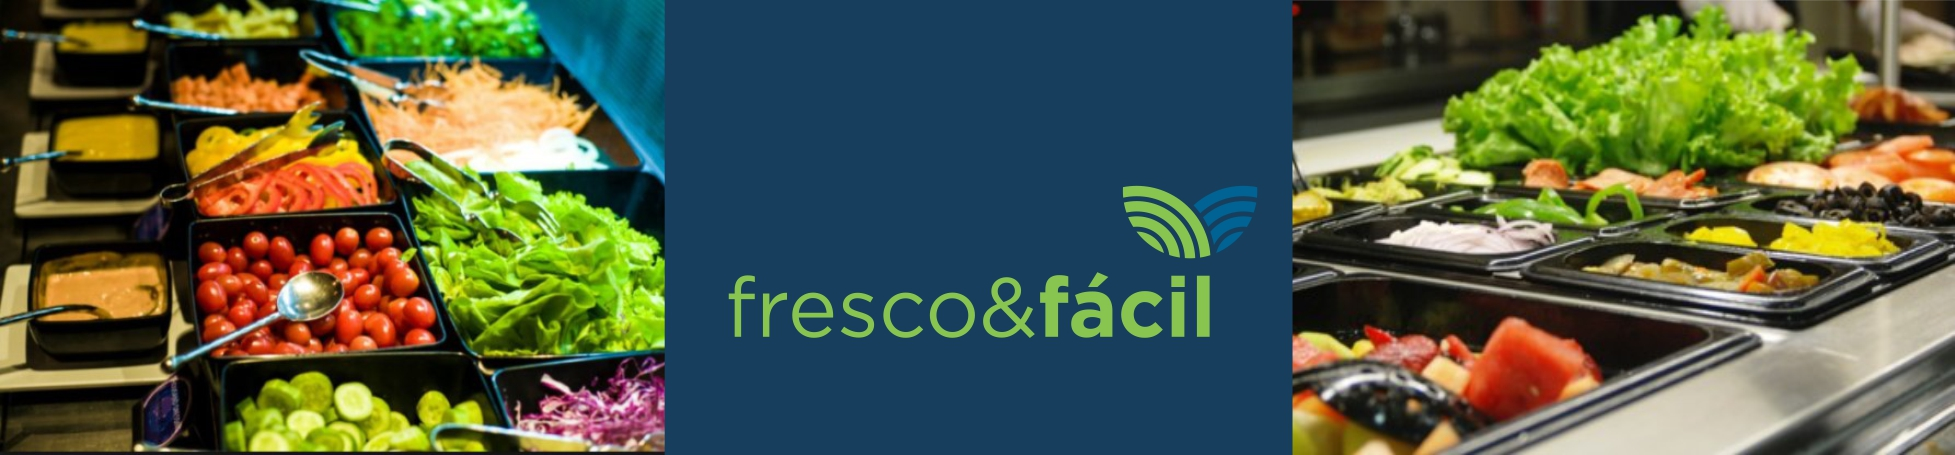 fresco-e-facil-1